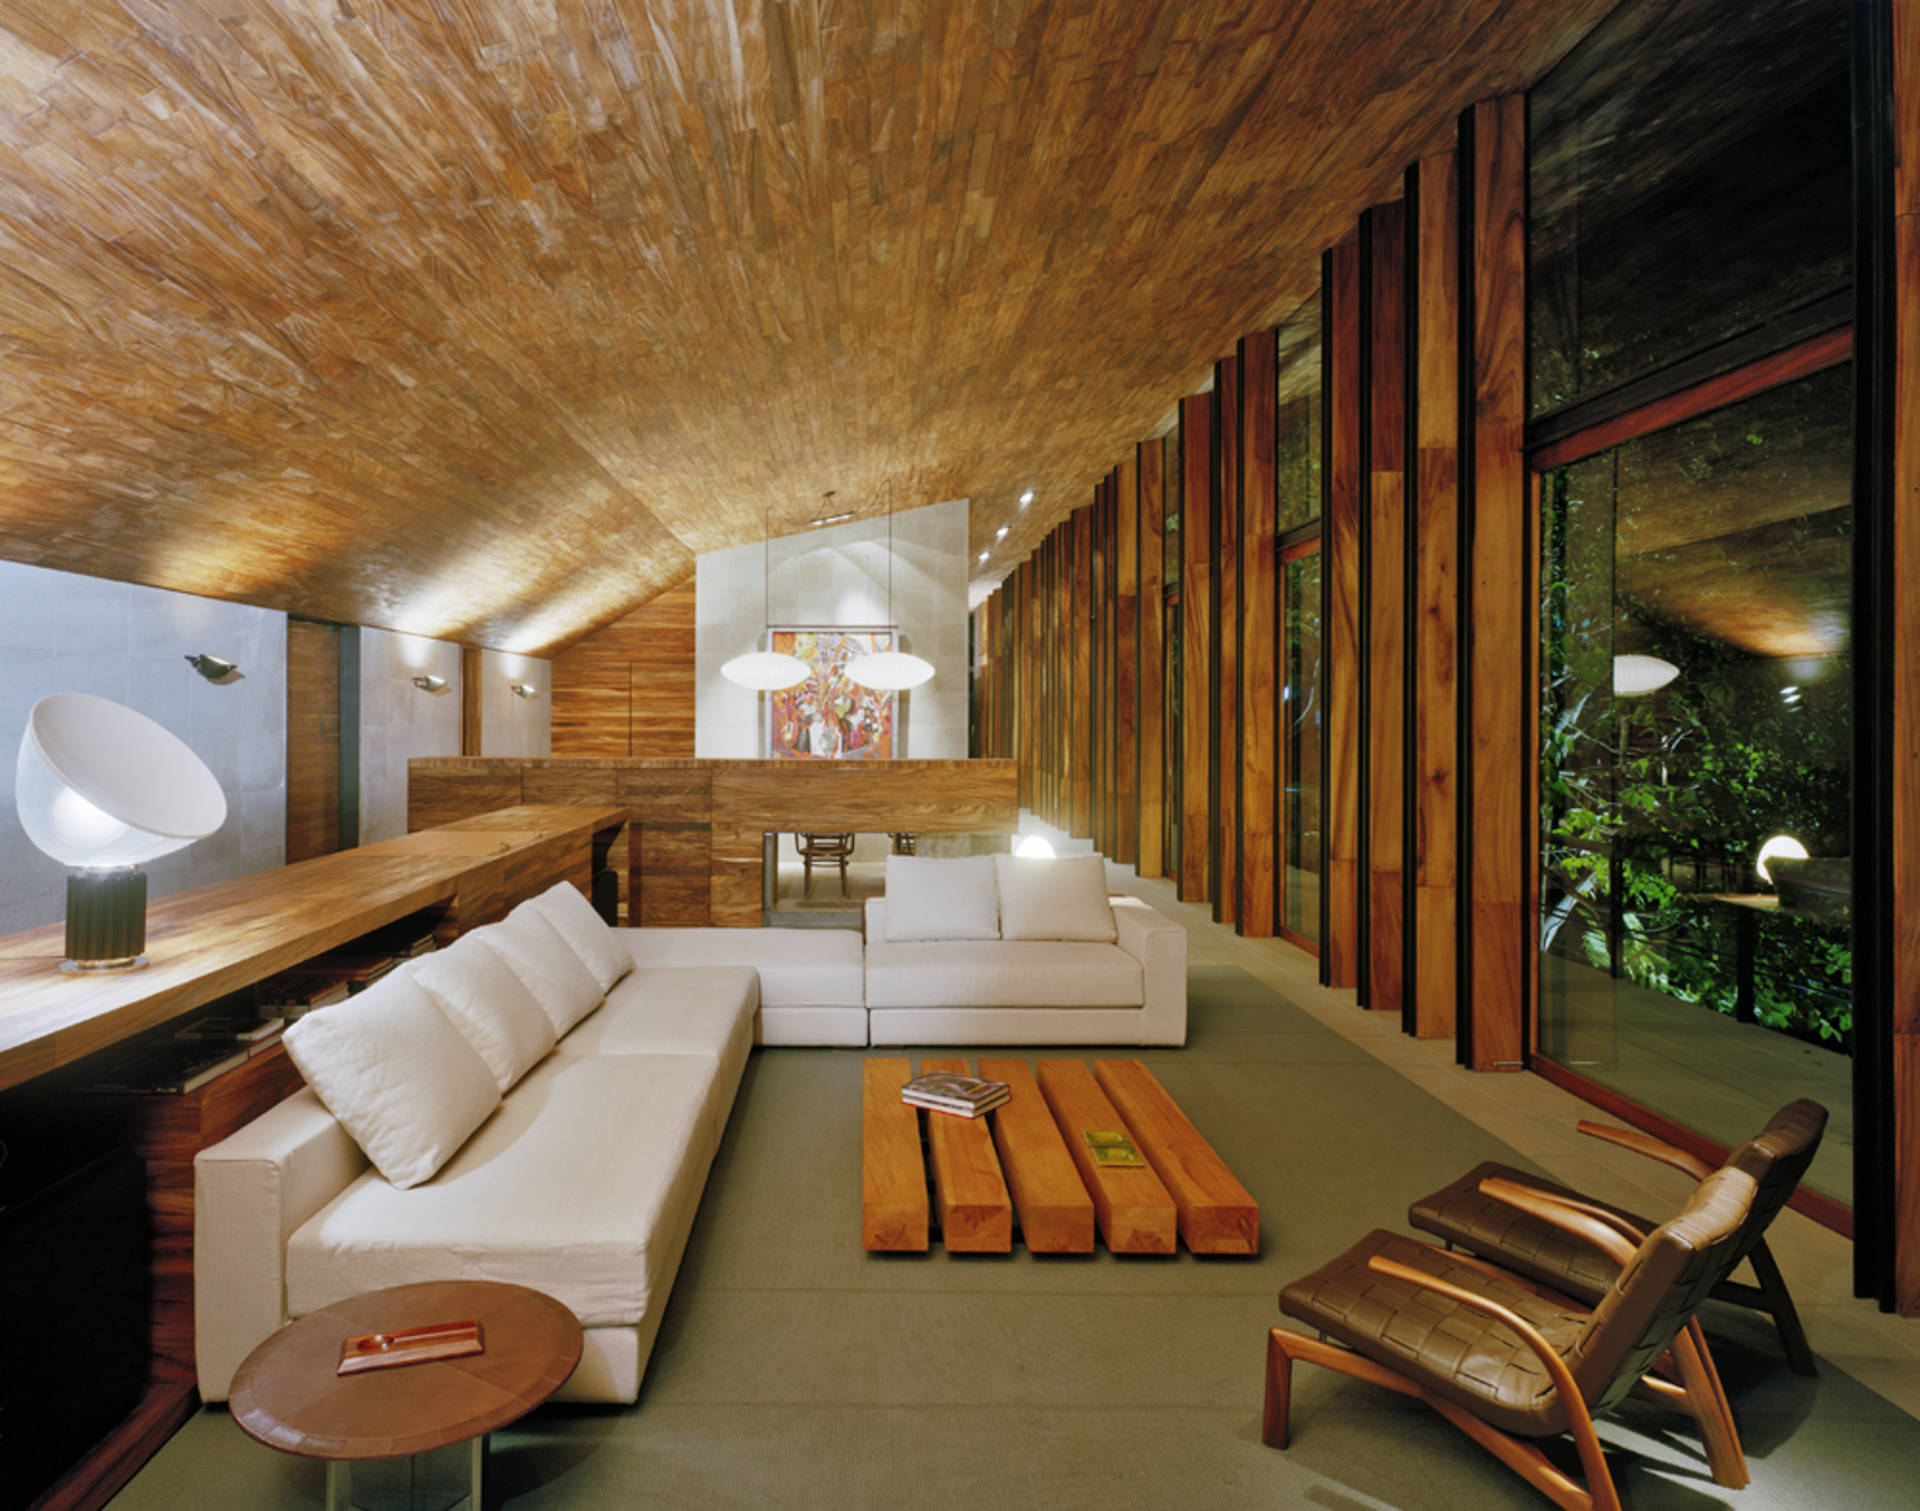 Awesome Solitary House In The Woods By Parque Humano Home Reviews Download Free Architecture Designs Scobabritishbridgeorg